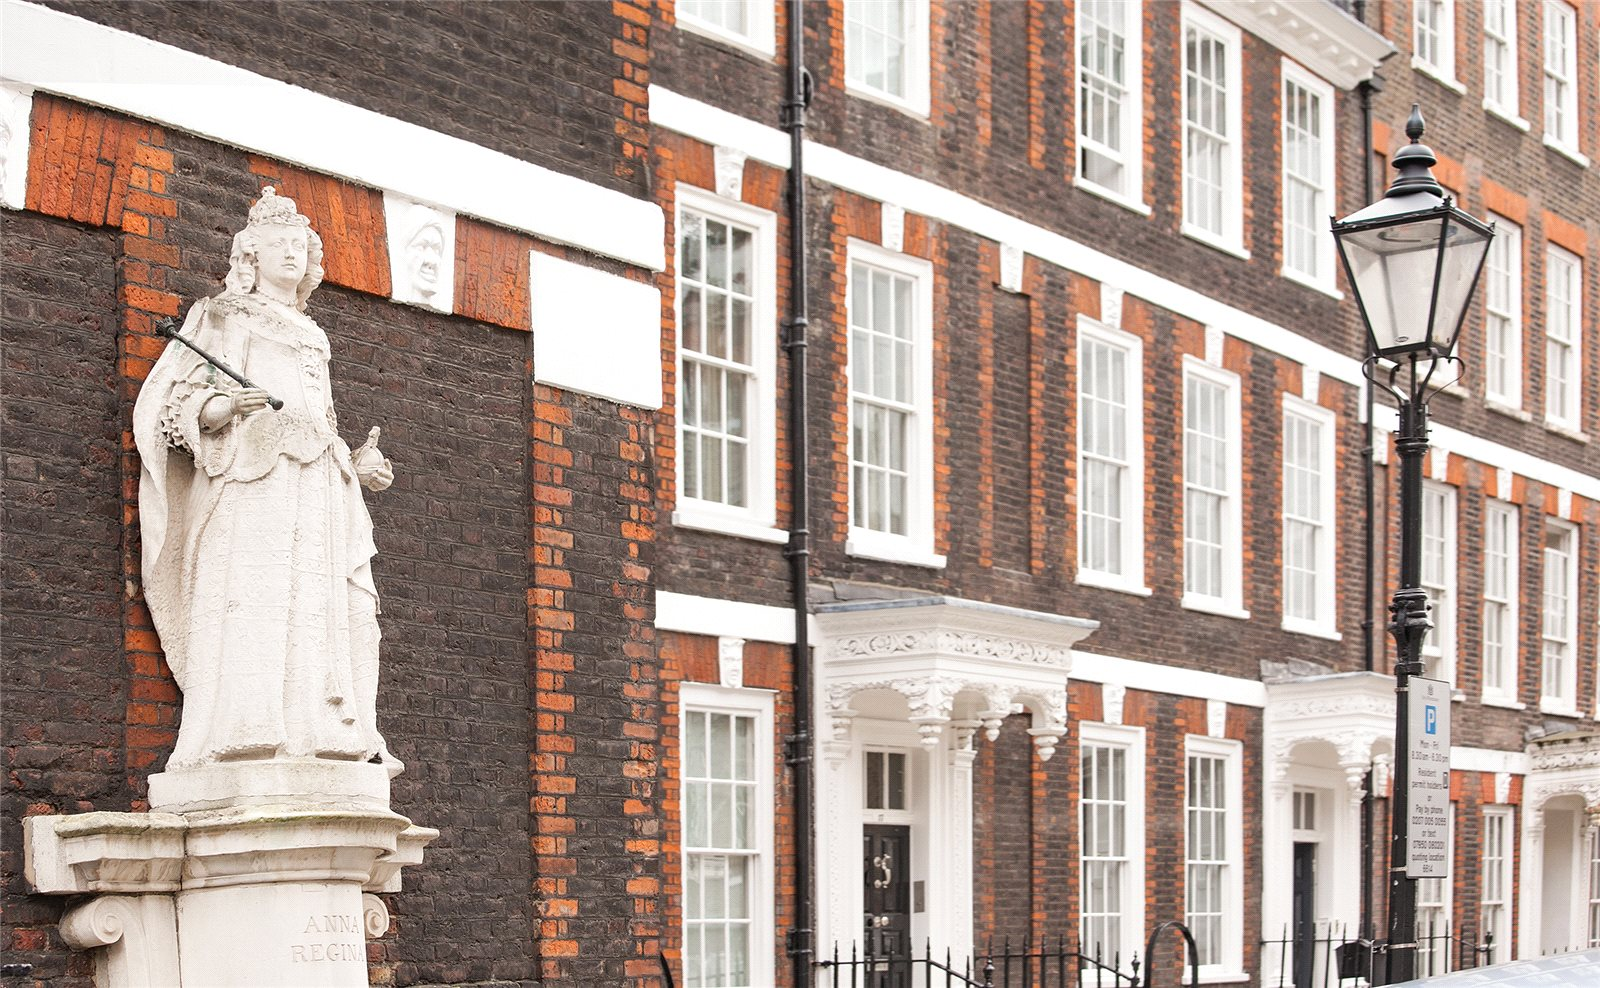 Single Family Home for Sale at Queen Annes Gate, Westminster, London, SW1H Westminster, London, England